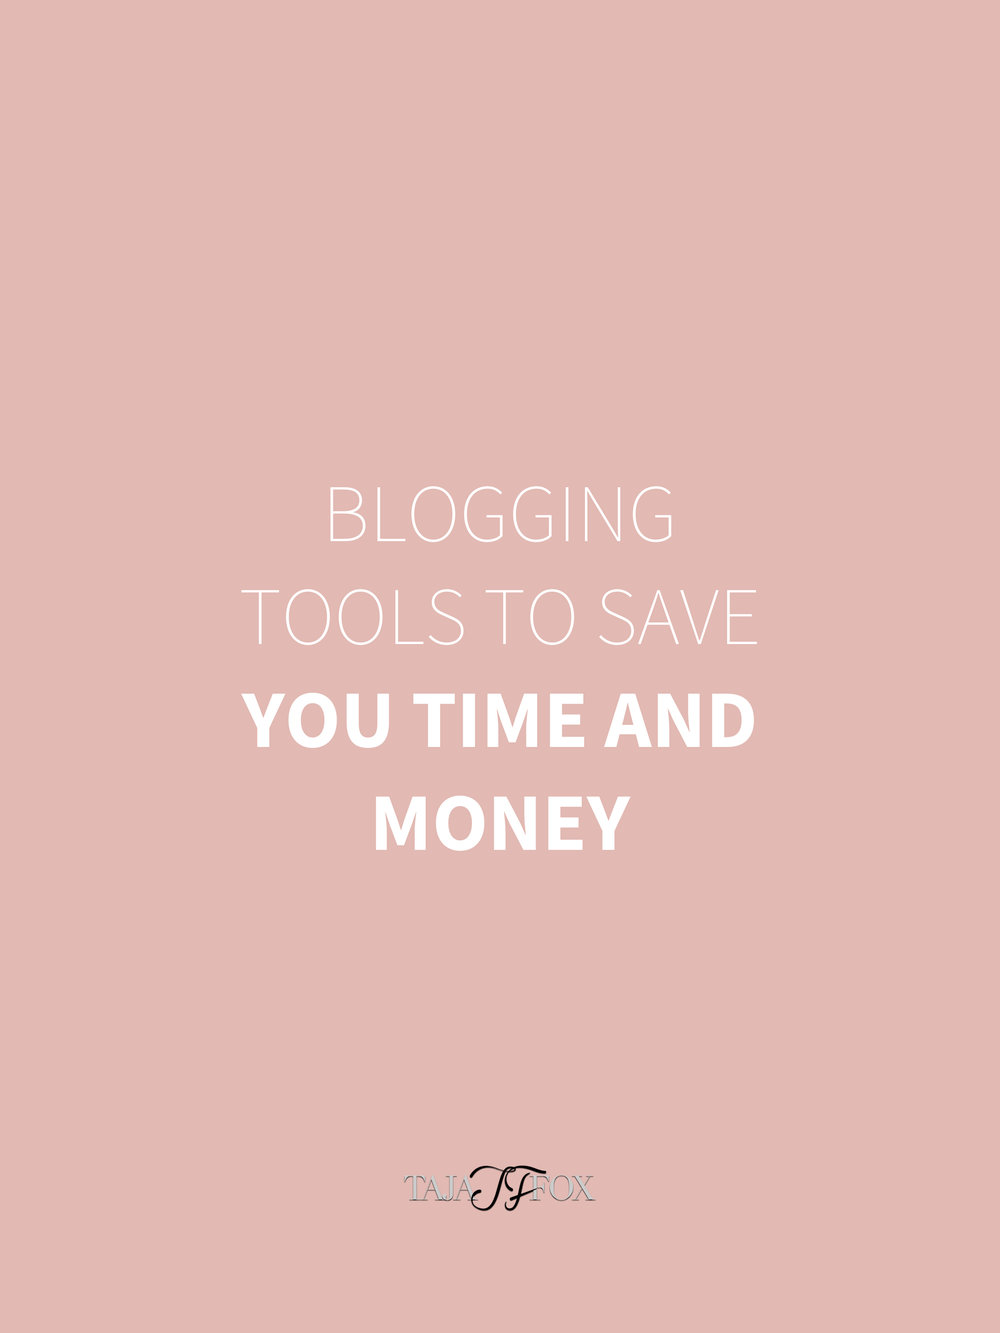 blogging tools to save you time and money tajafox.com.jpg